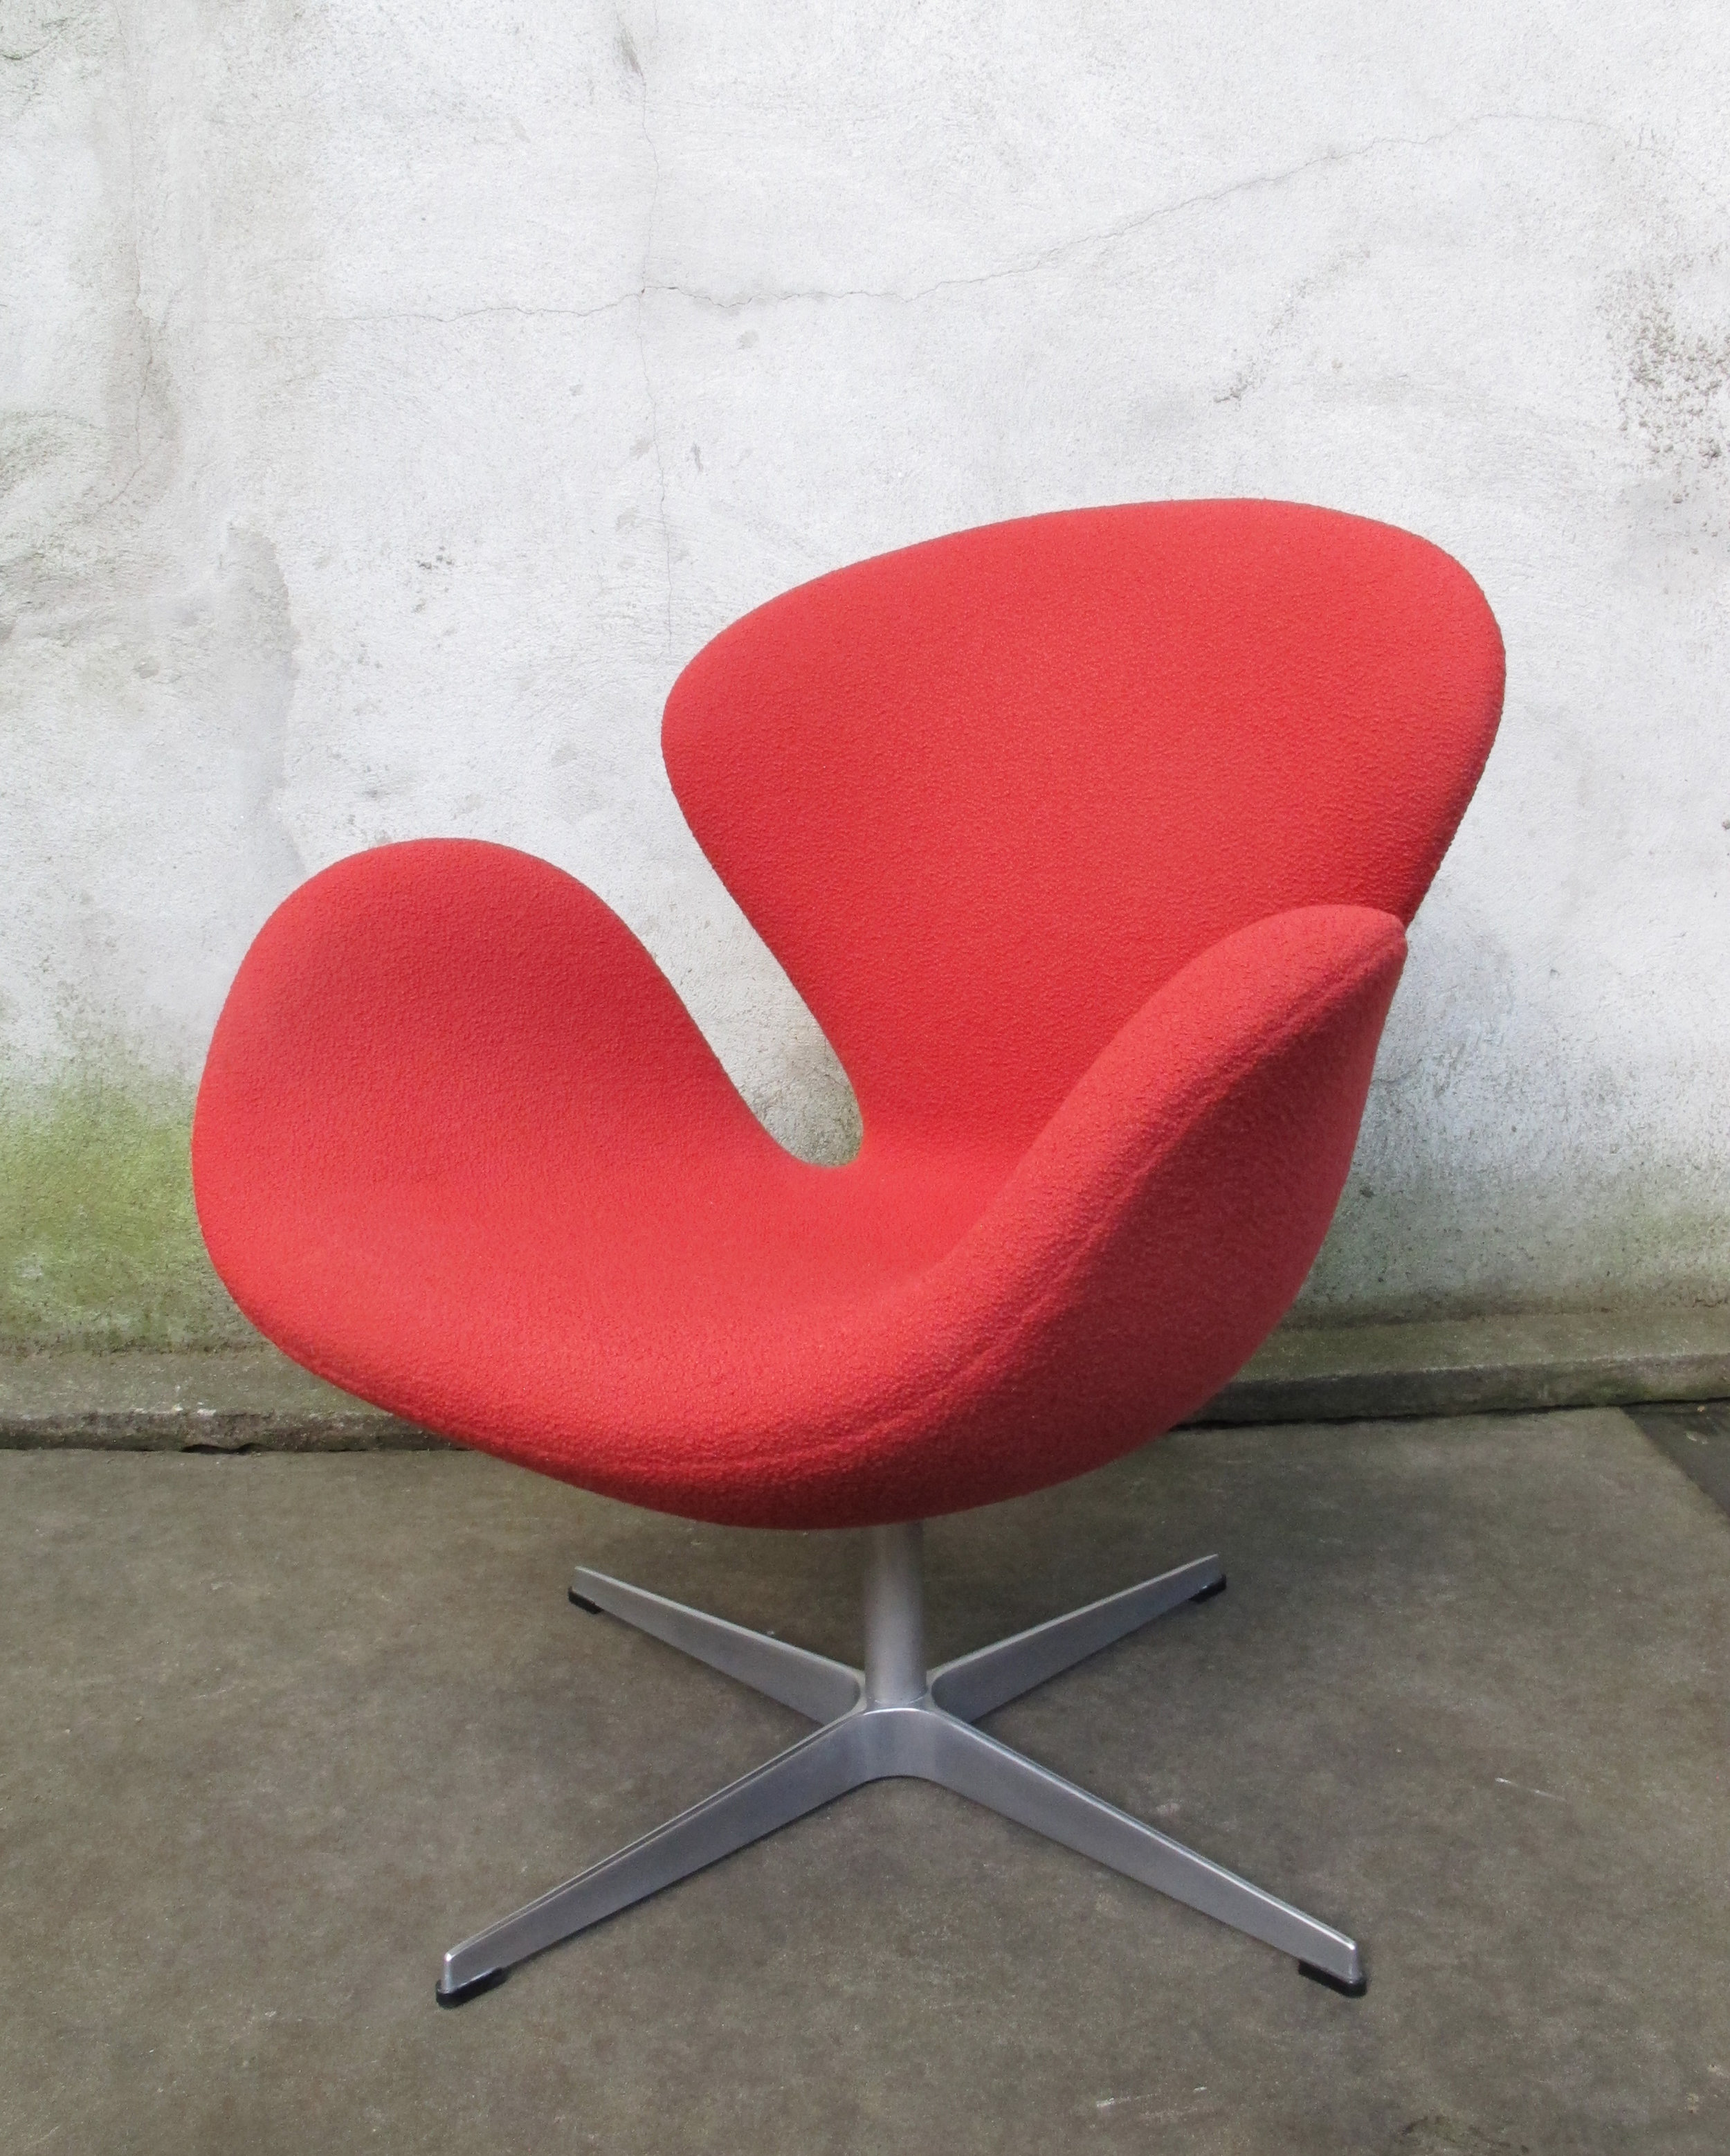 MID CENTURY ARNE JACOBSEN FRITZ HANSEN RED SWAN CHAIR BY KNOLL